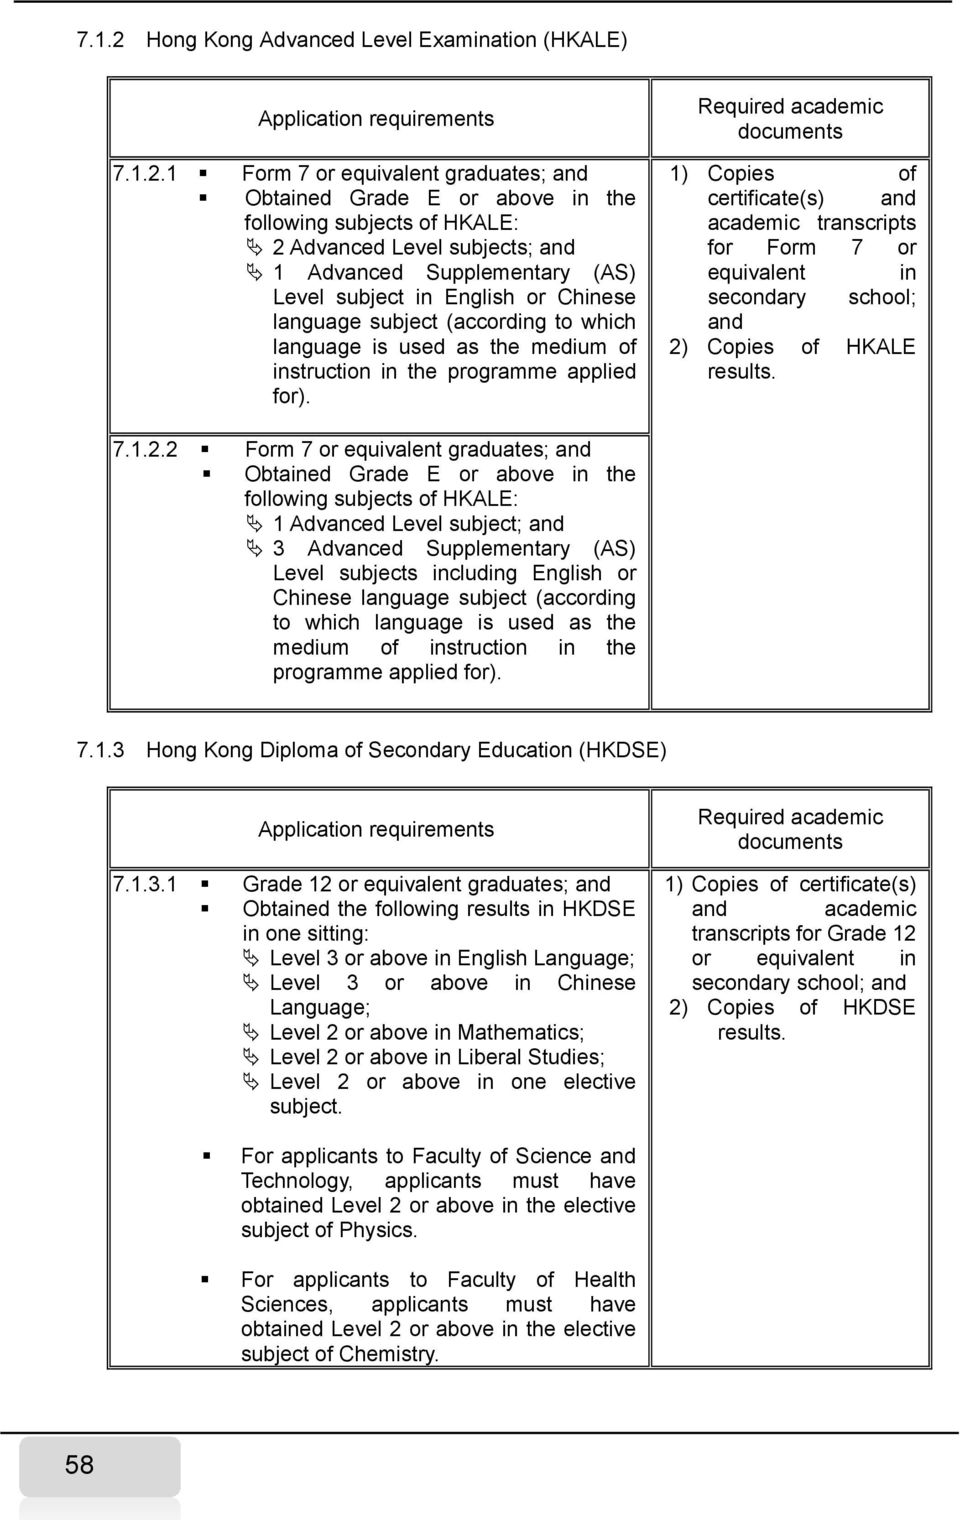 1 Form 7 or equivalent graduates; and Obtained Grade E or above in the following subjects of HKALE: 2 Advanced Level subjects; and 1 Advanced Supplementary (AS) Level subject in English or Chinese